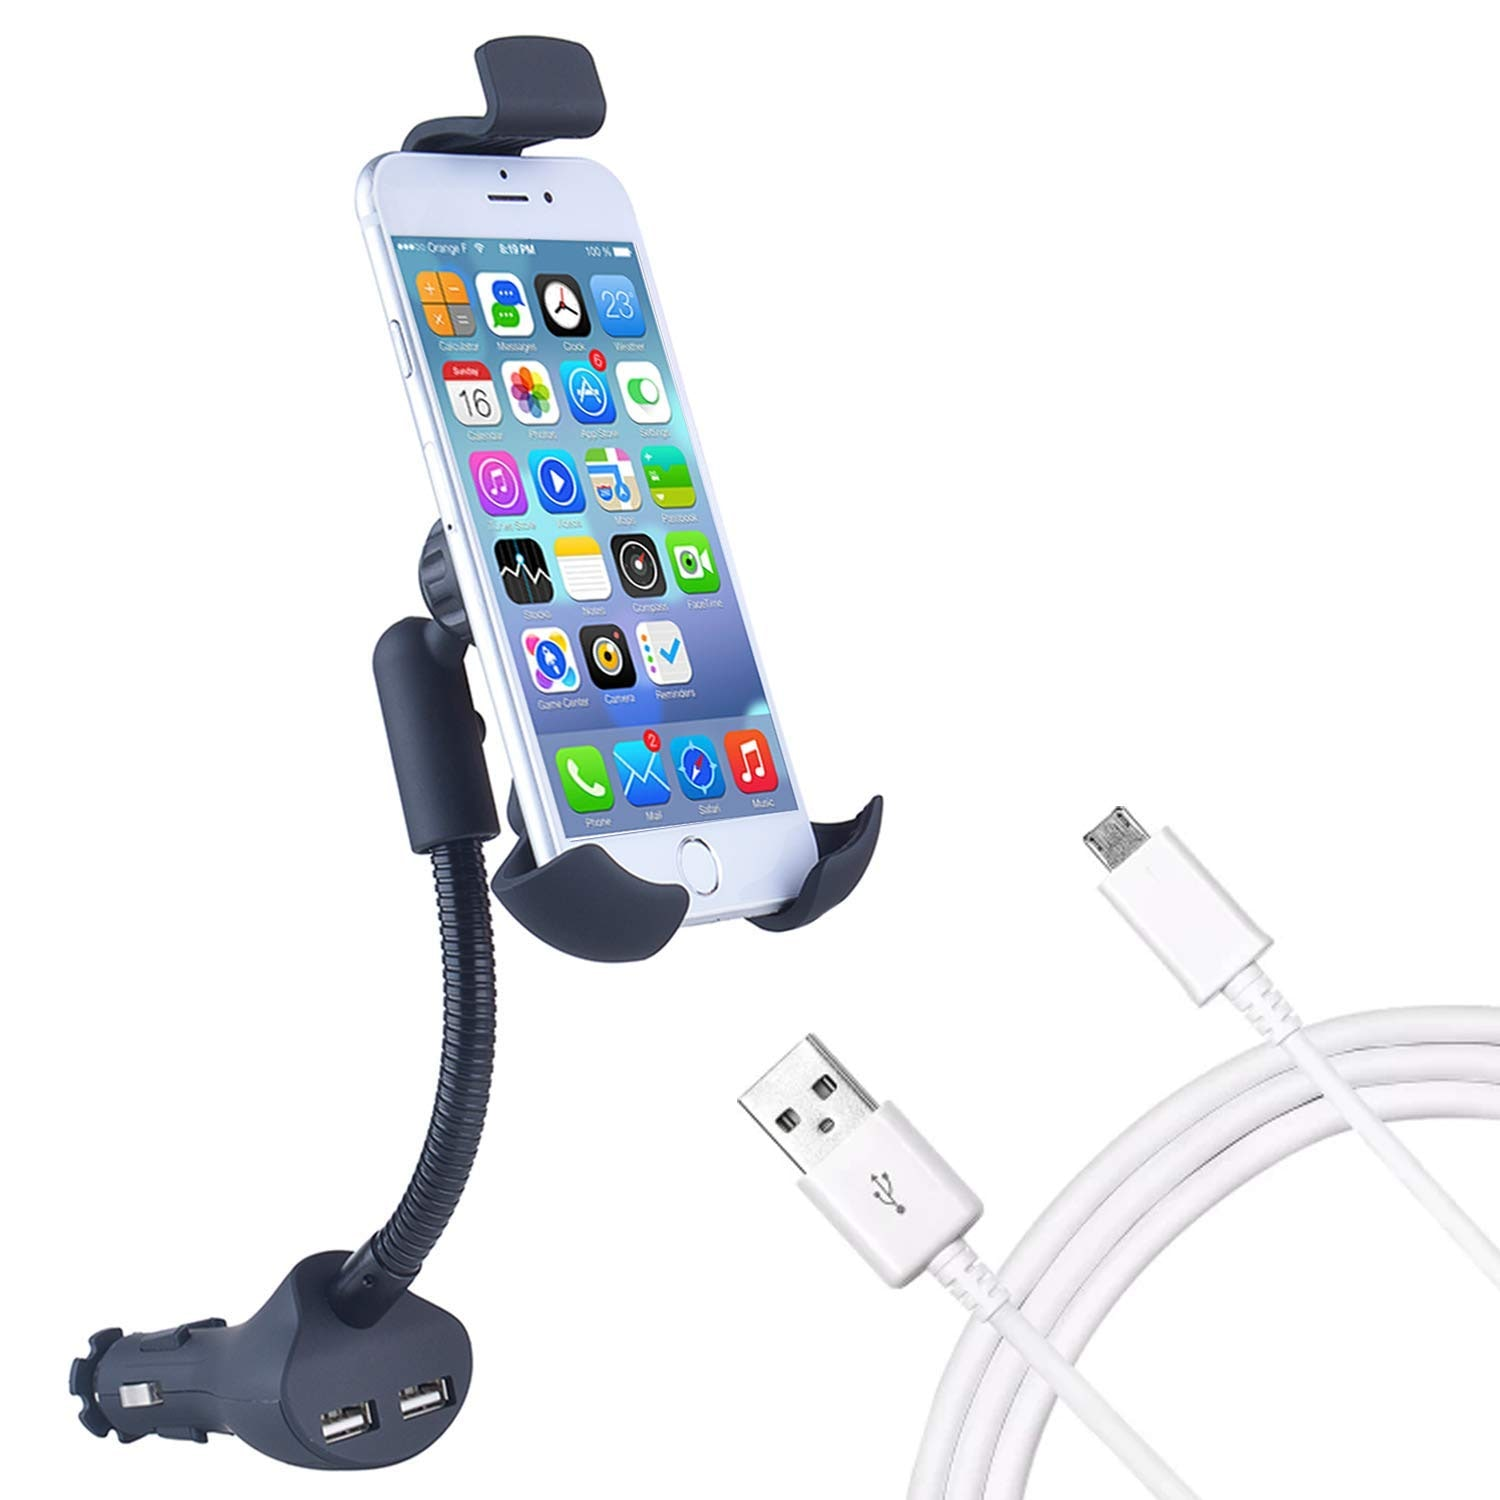 BLACKCAT DUAL USB MOBILE CHARGER WITH HOLDER DUAL USB MH